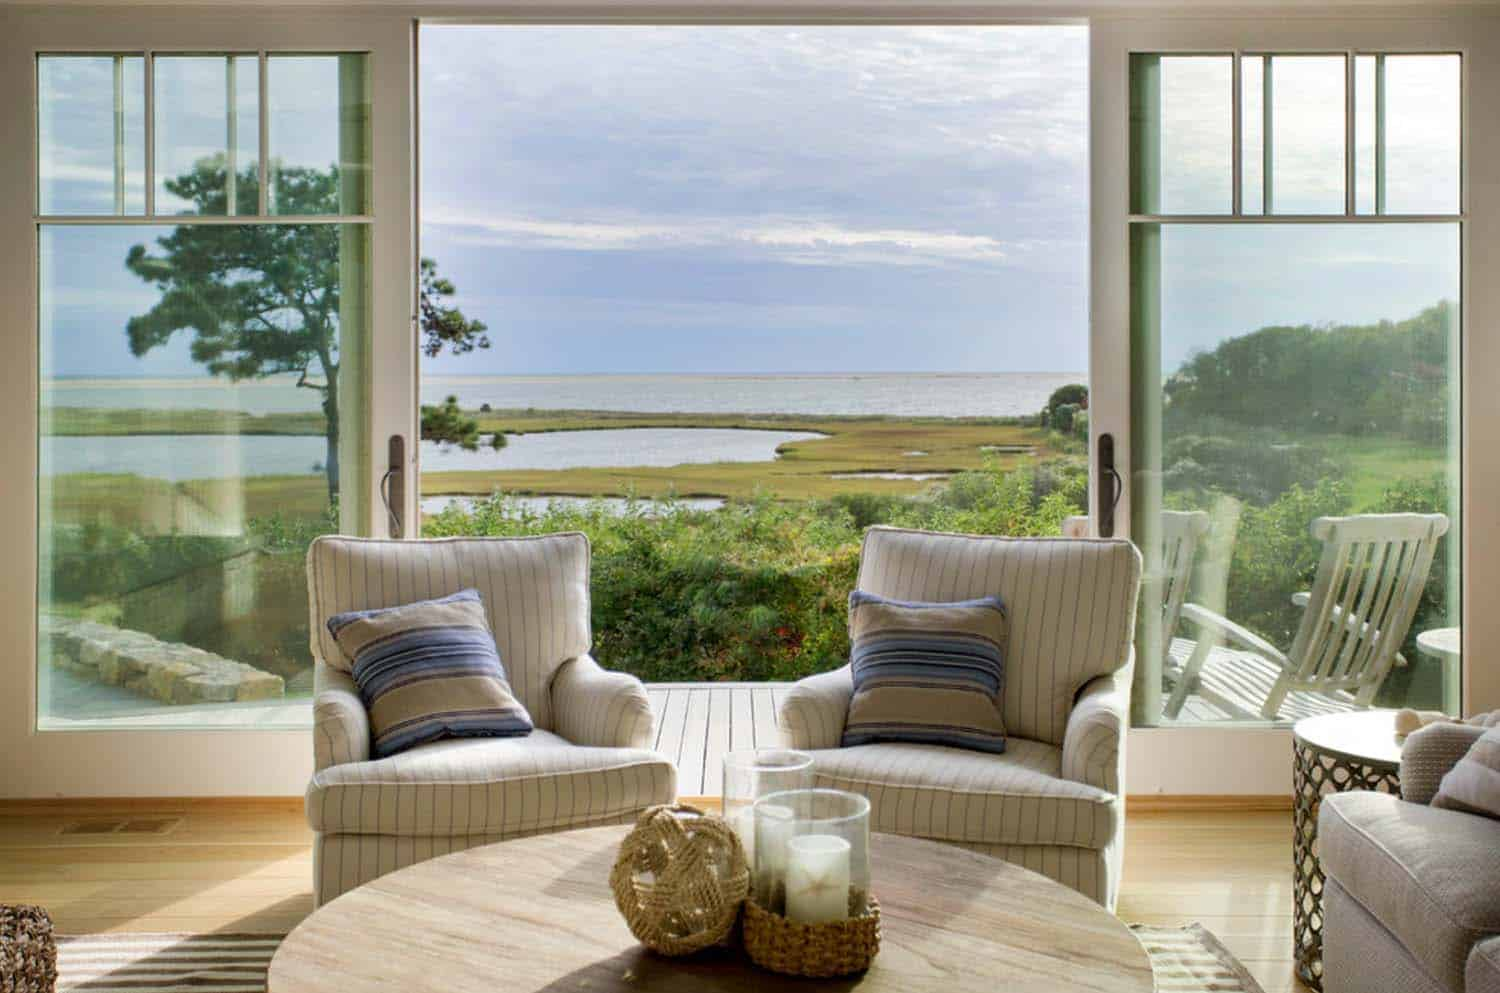 Beach House-Marthas Vineyard Interior Design-05-1 Kindesign